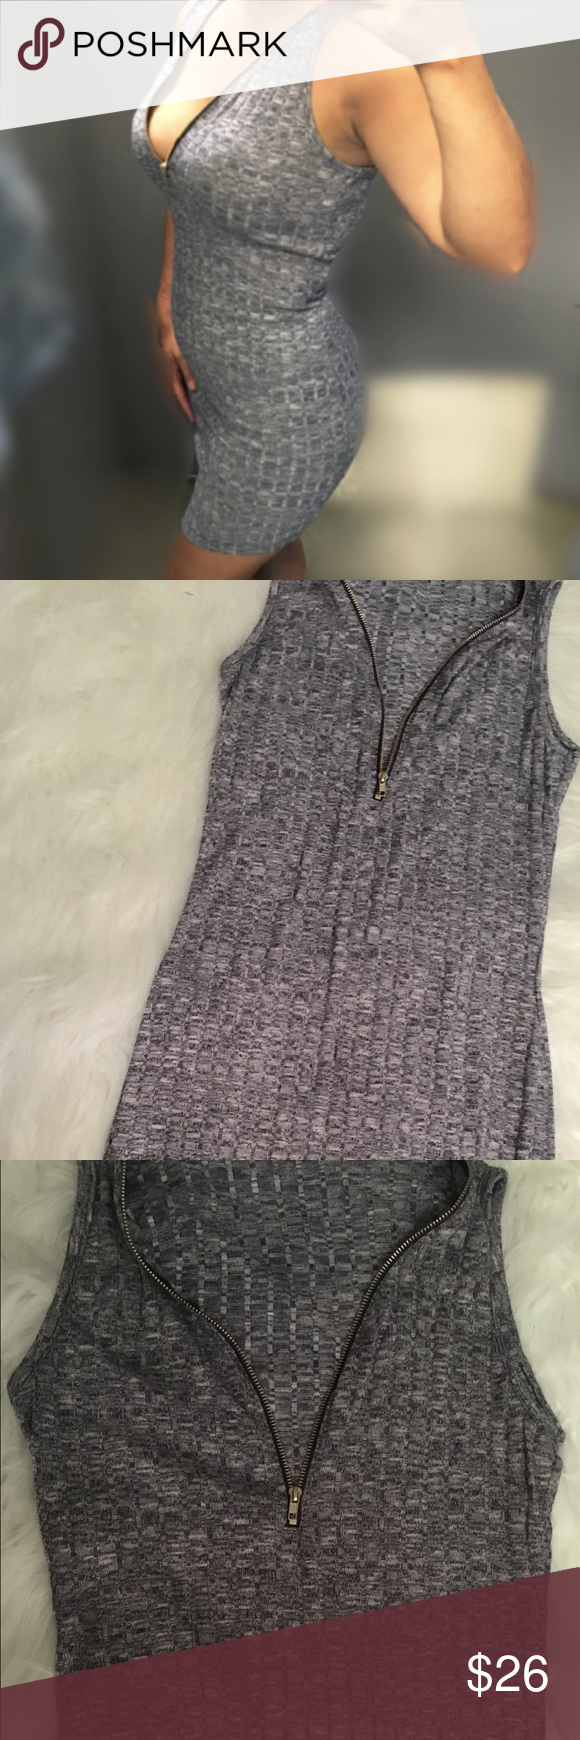 New Sexy Half Zip Bodycon Summer Dress New Light Gray Blue BodyCon Dress  Small and Medium Available  Grayish/Bluish Color  Rayon/Polyester/Spandex  Half Zip in the front  Unbranded   ✔️Firm Price  ✔️Ships day after (no shipping on weekends) :) ✖️No Trades Dresses Mini